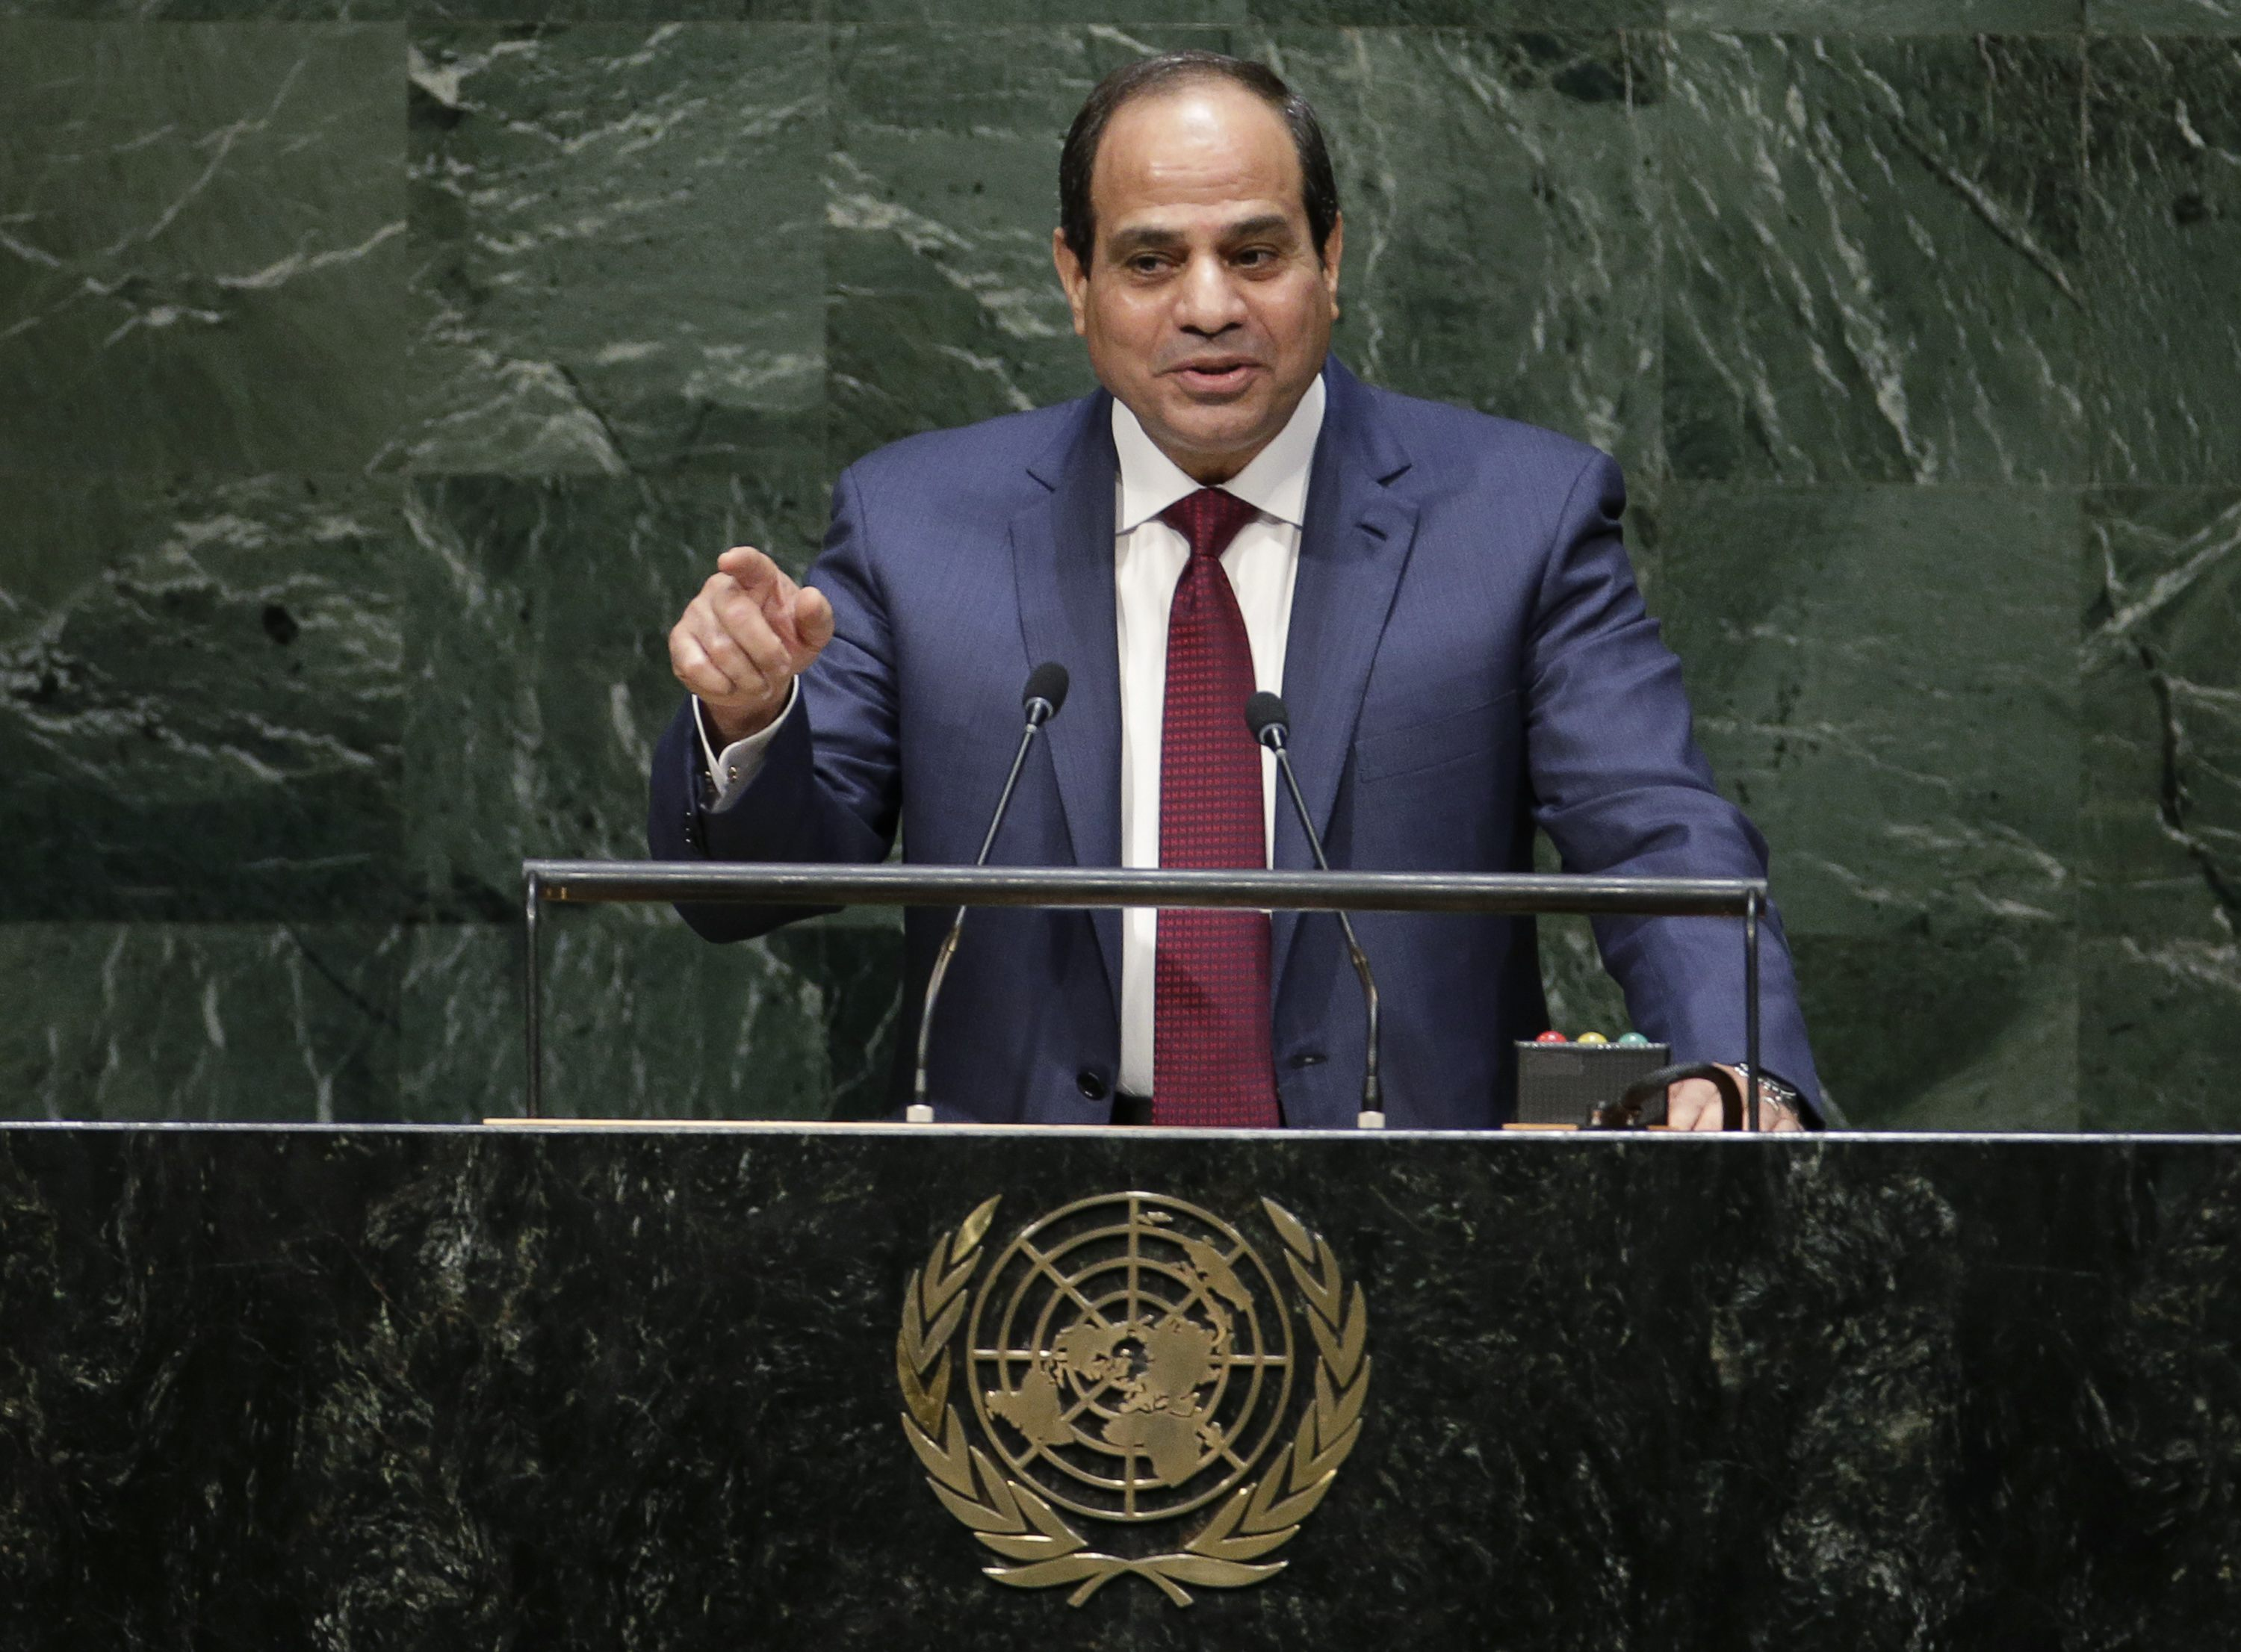 Egypt's President Abdel Fattah al-Sisi addresses the 69th United Nations General Assembly at U.N. headquarters in New York, September 24, 2014. REUTERS/Mike Segar (UNITED STATES - Tags: POLITICS)